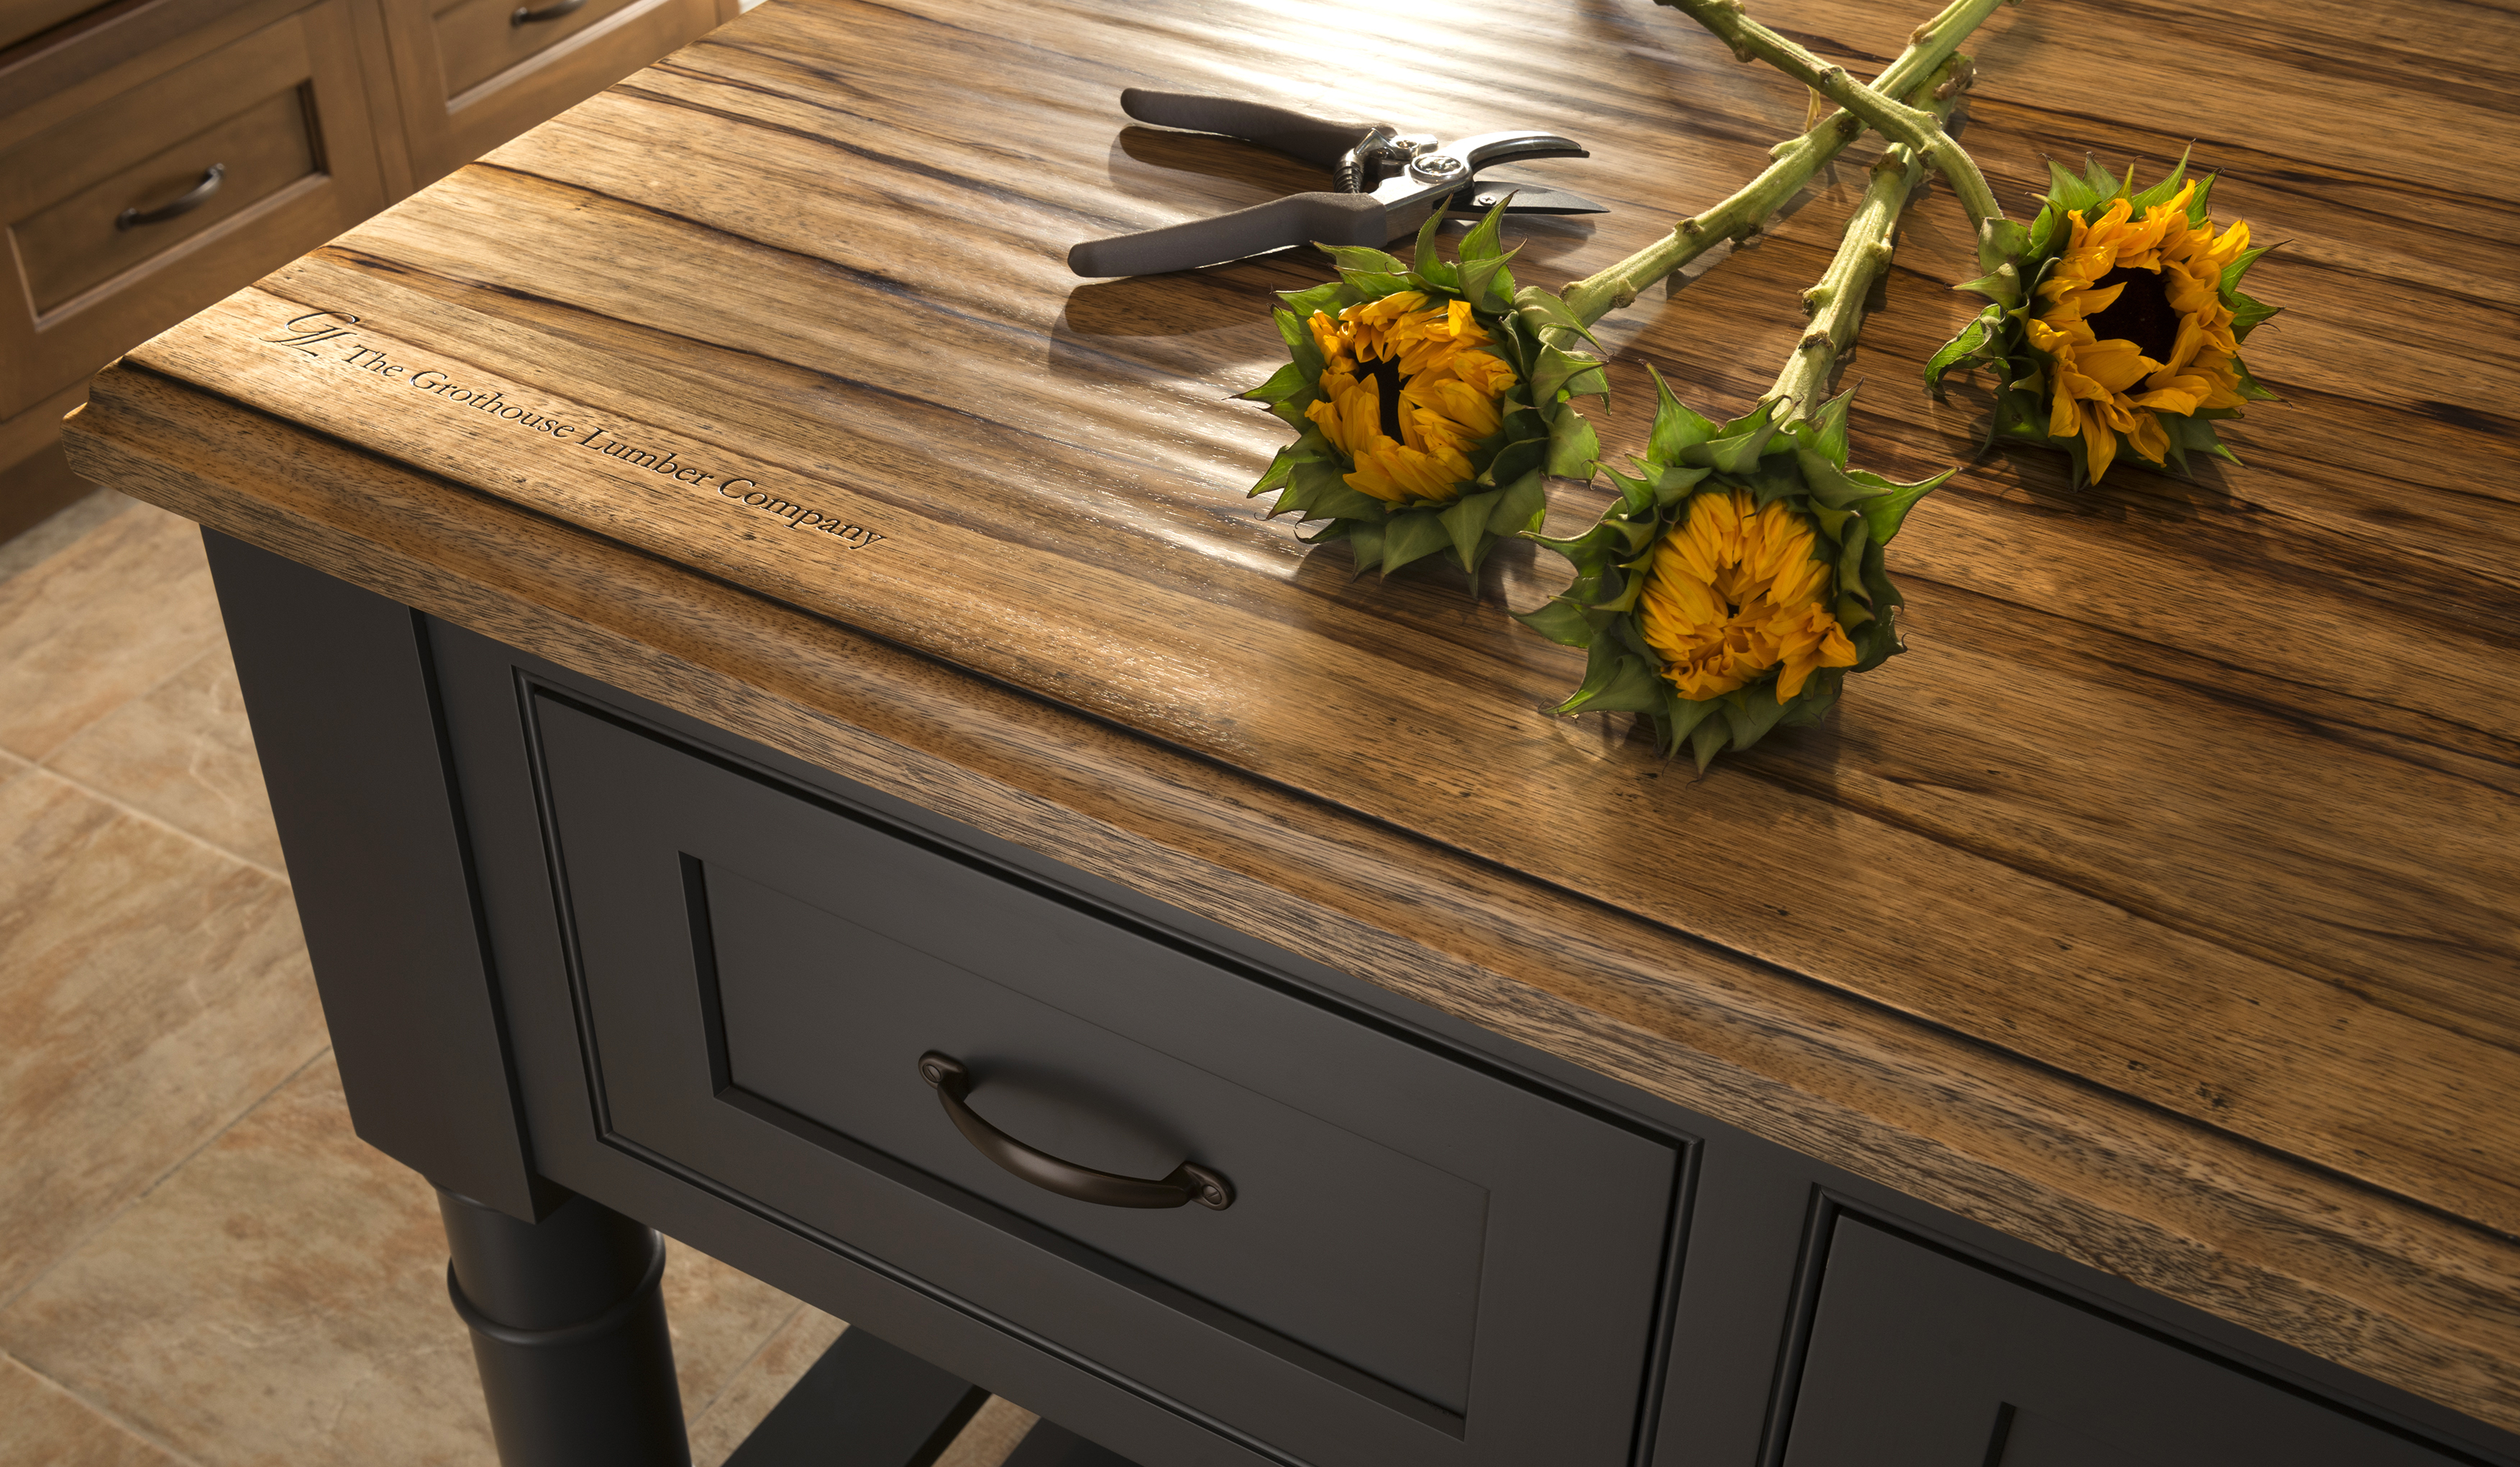 Rustic Countertop with Hand Planed Distressing designed by Wood-Mode